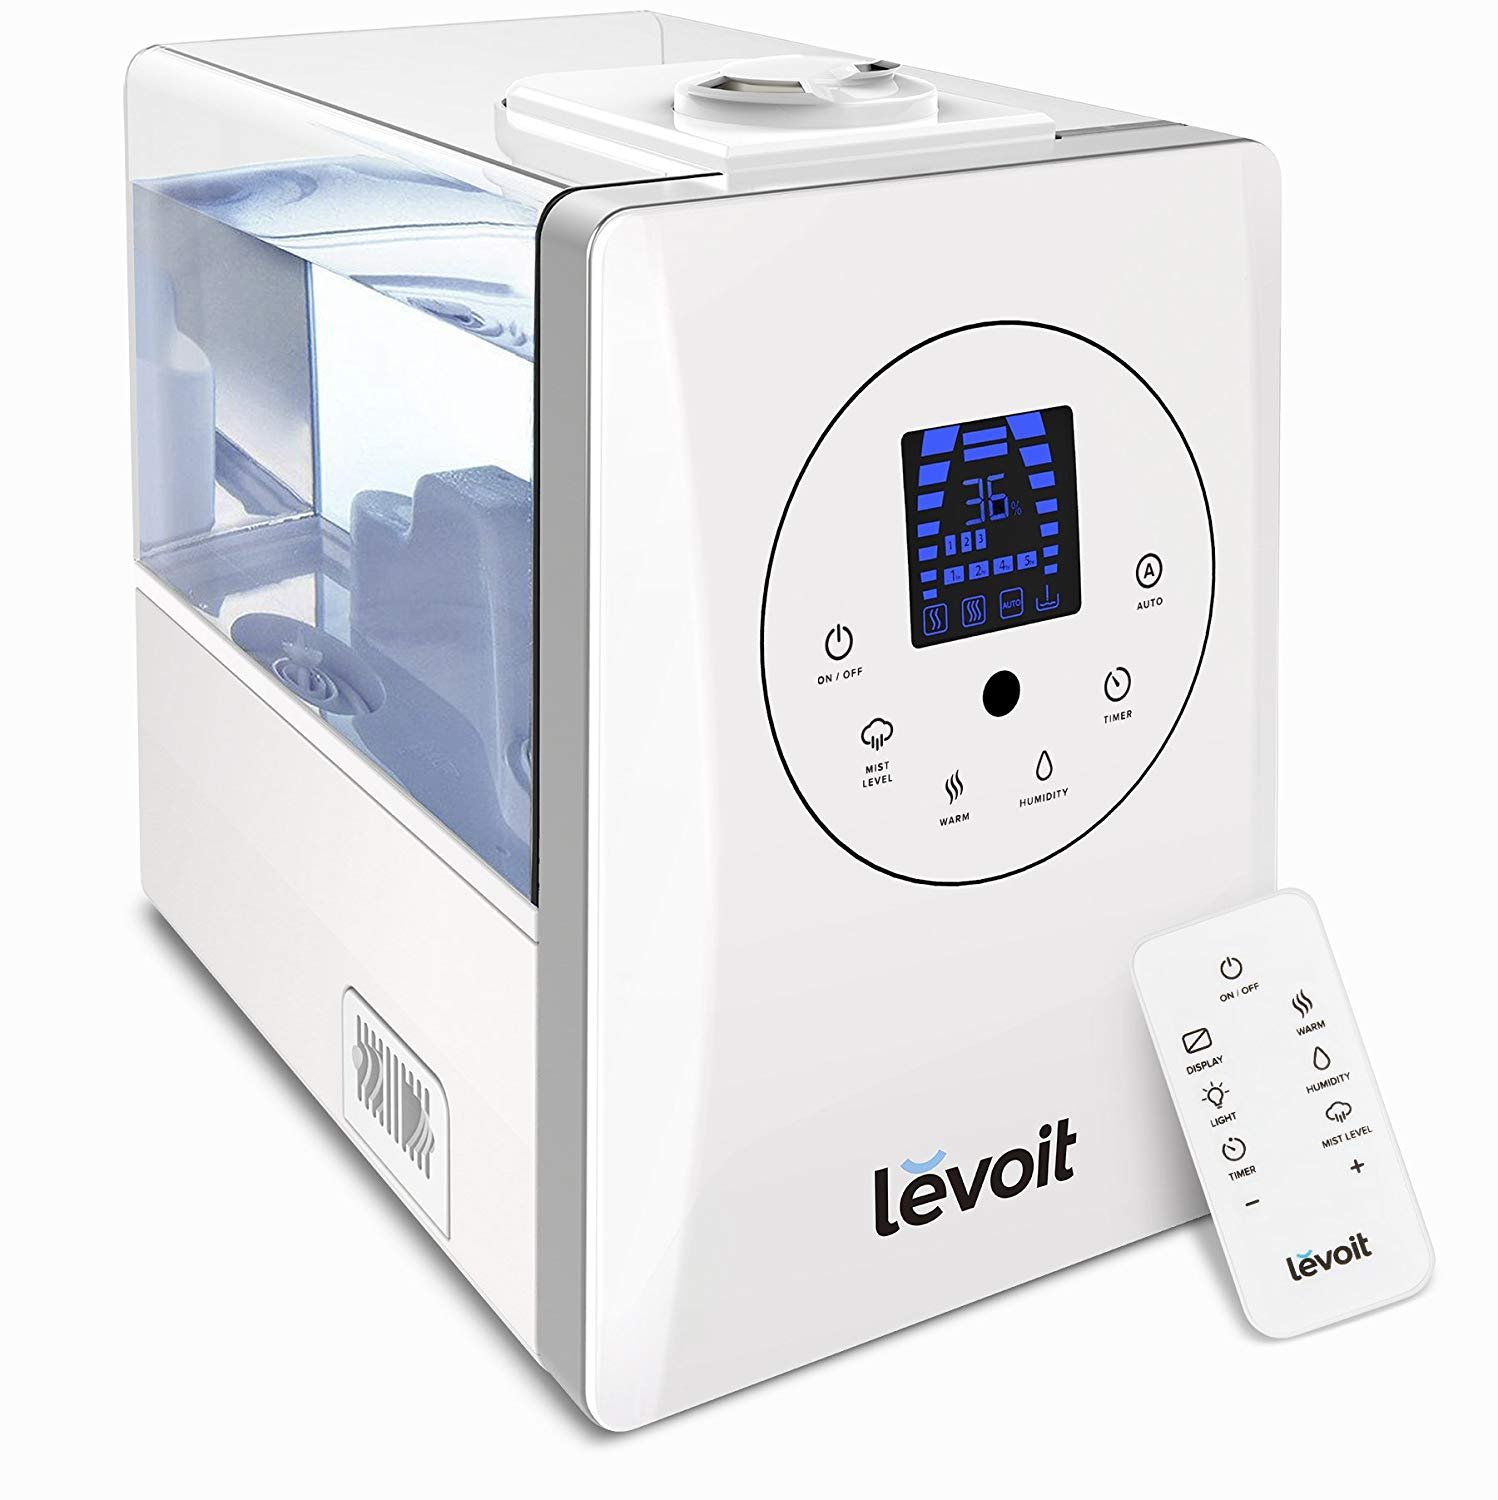 Levoit Humidifiers, 4.5L Ultrasonic Cool Mist Humidifier with 3 Adjustable Mist Levels, Quiet Operation, One Touch Control, Waterless Auto Shut-Off and Night Light, Essential Oil Diffuser for Bed Room, Babies